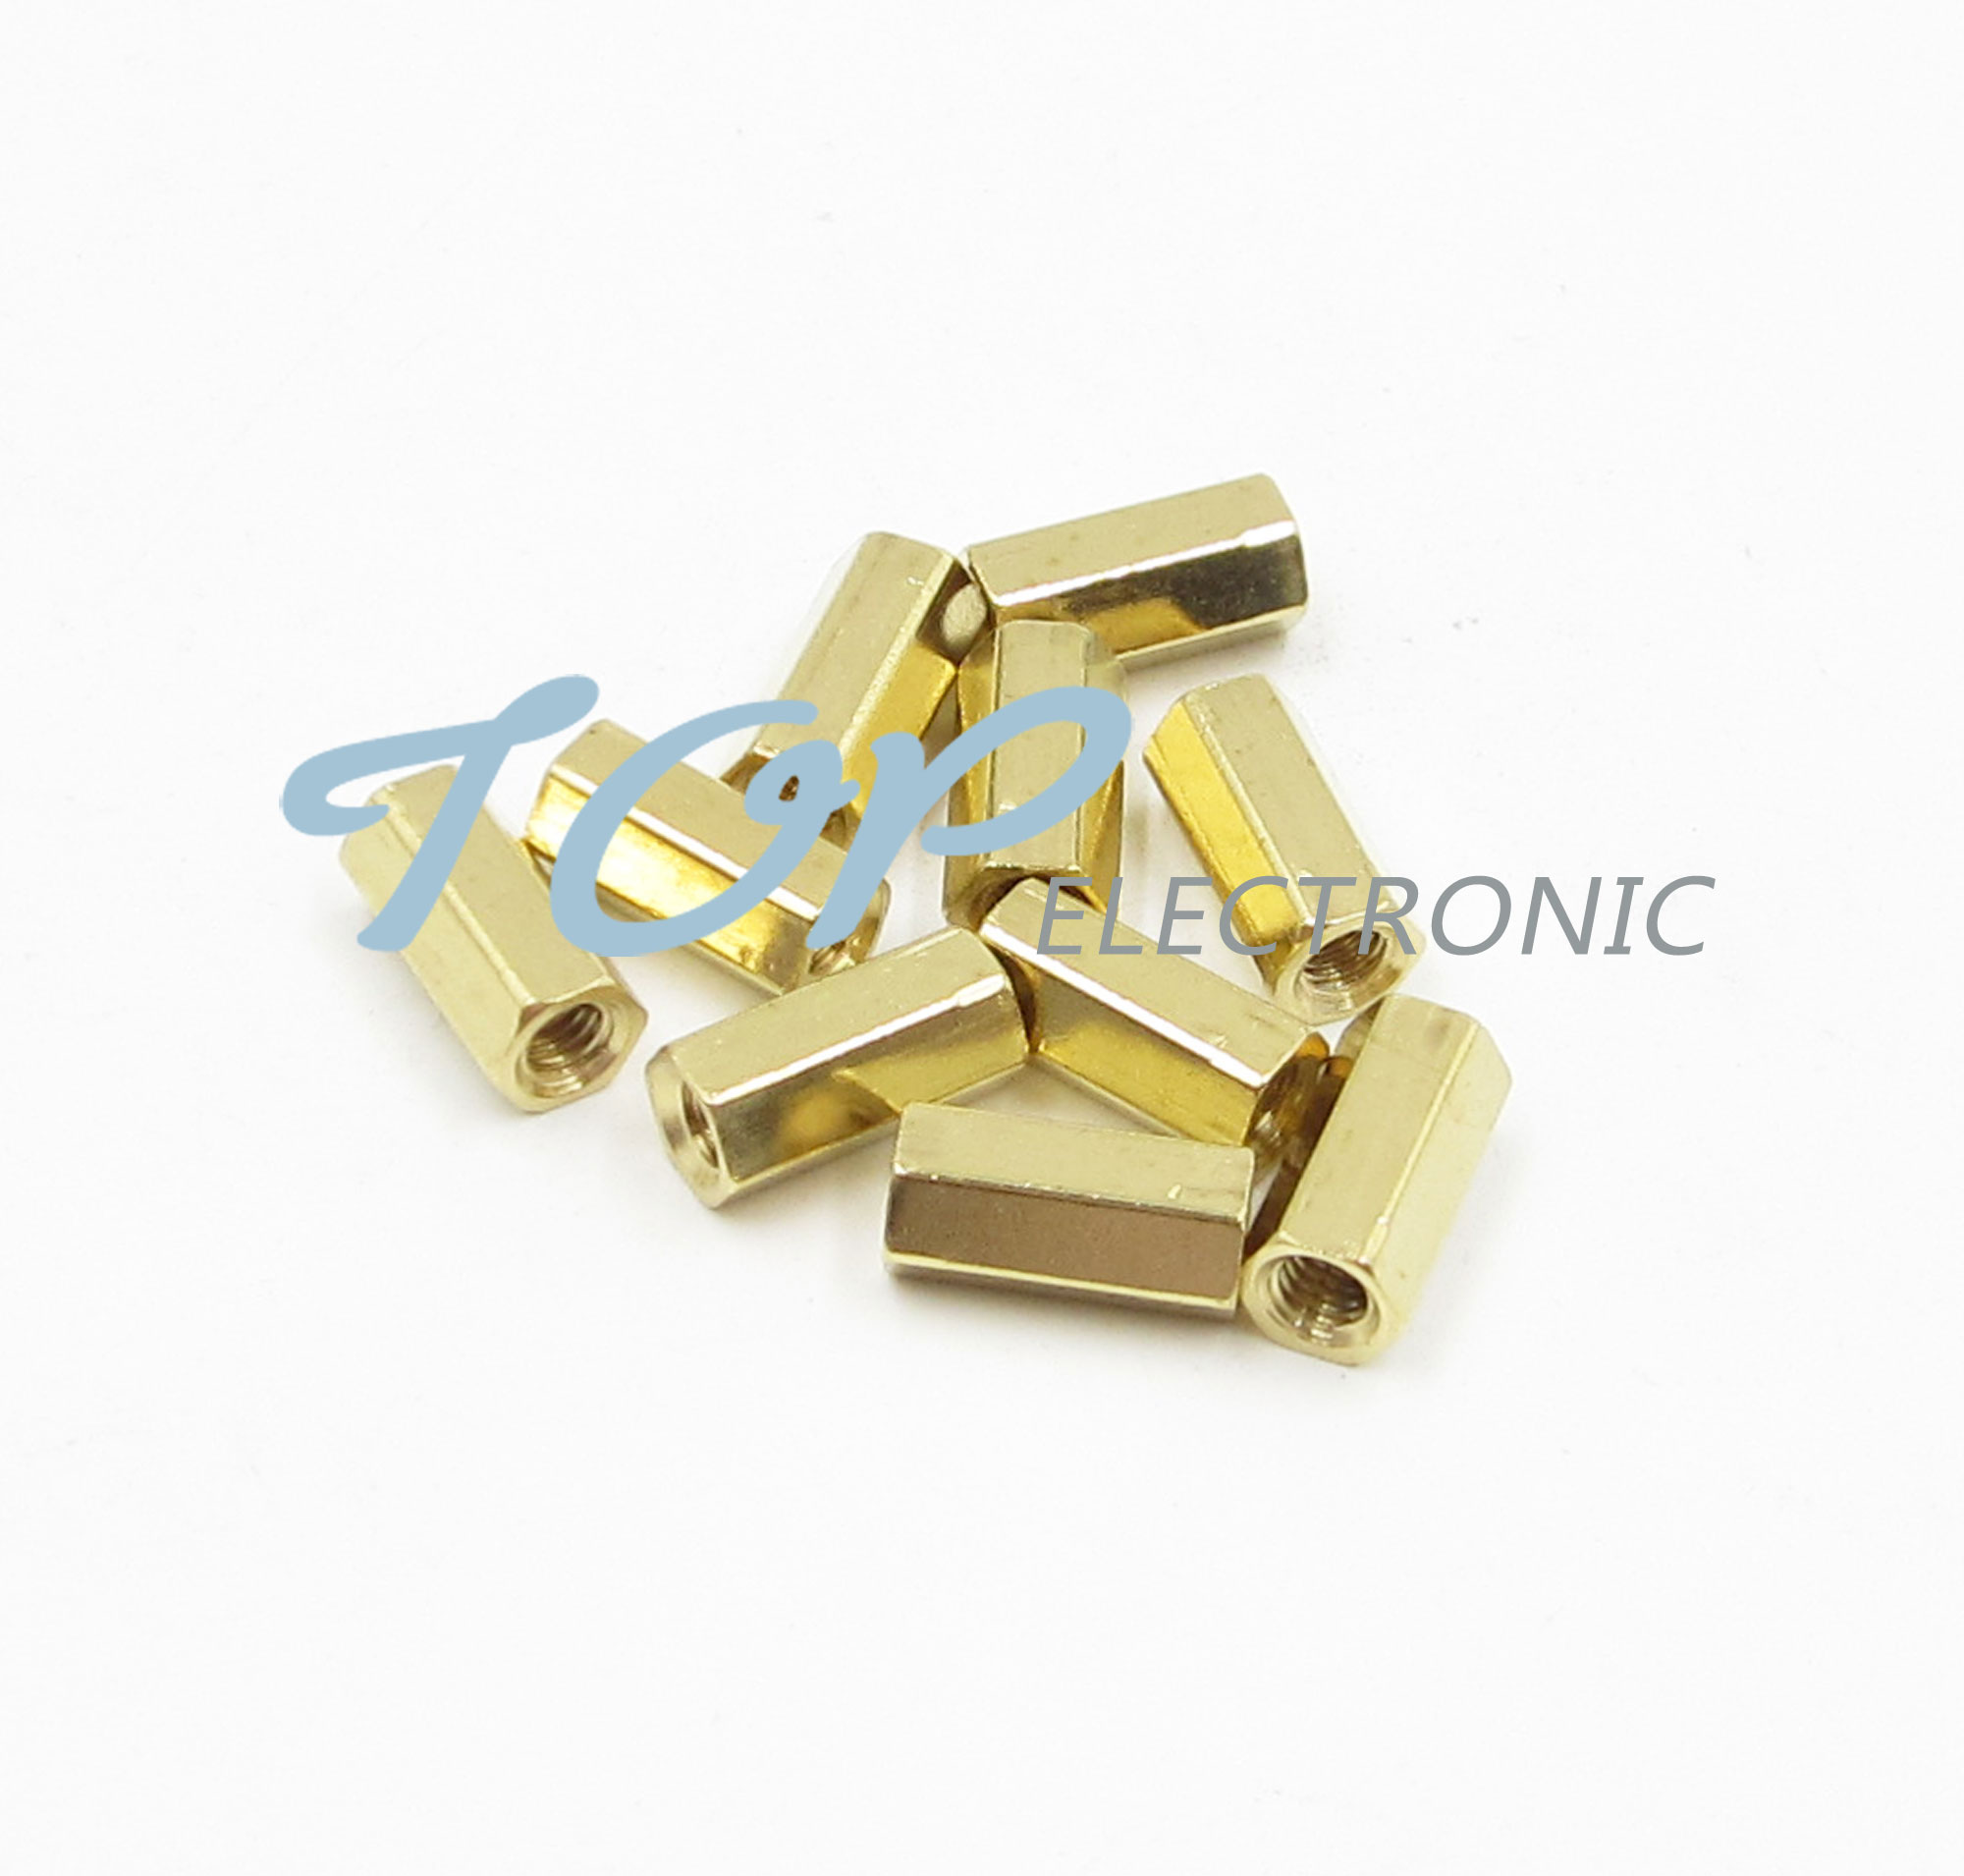 50pcs M3 10 mm Hexagonal net nut Female brass Standoff//Spacer Good Quality